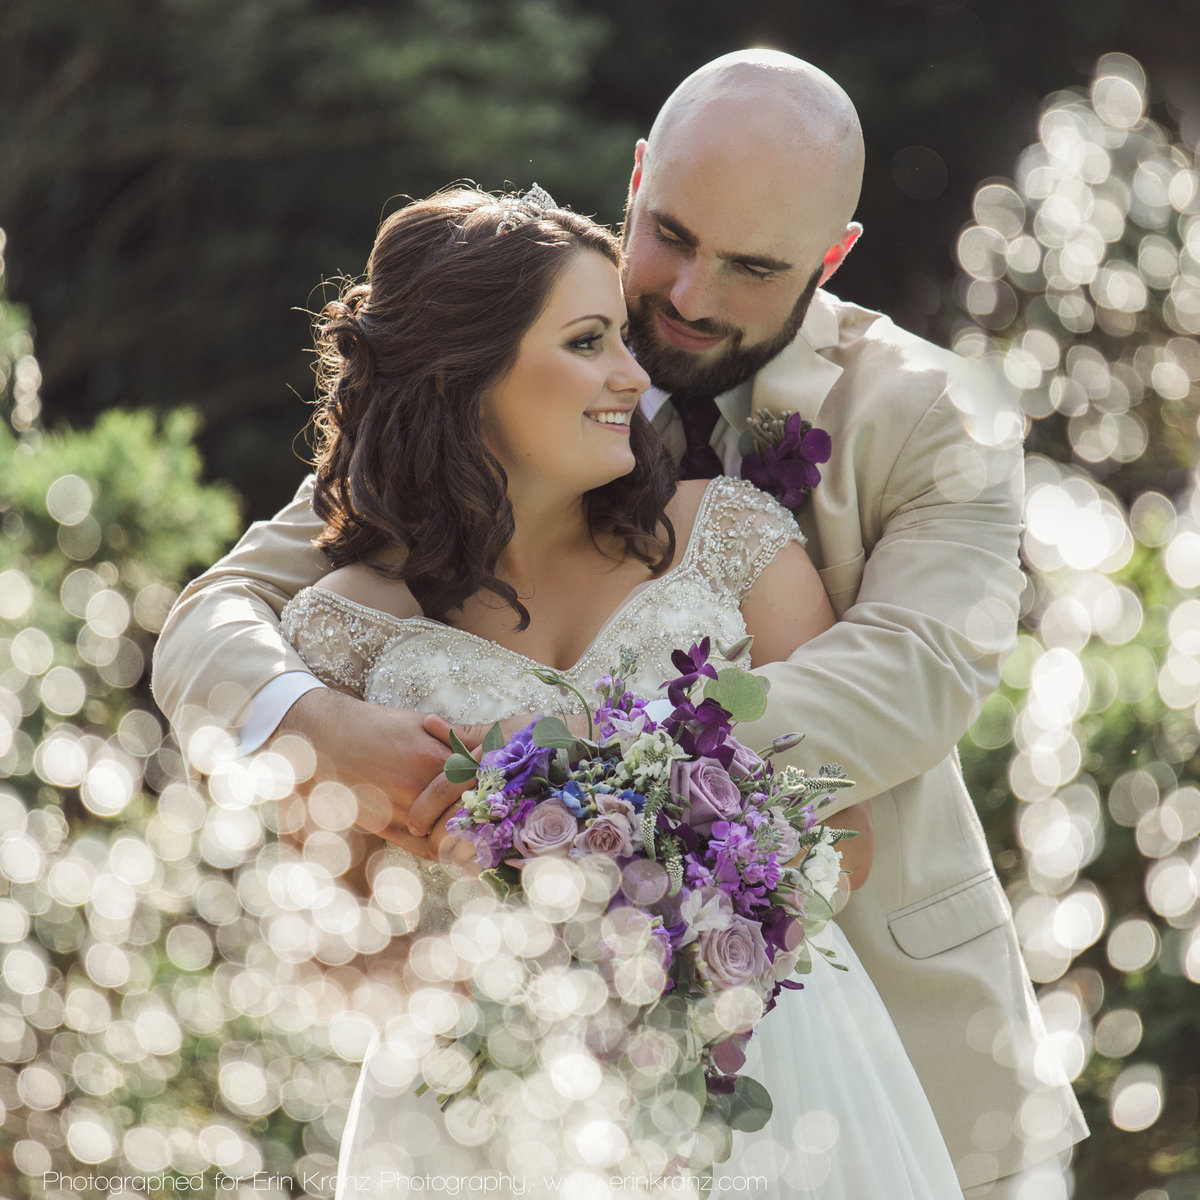 charlotte wedding photographer jamie lucido captures a beautiful image of the bride and groom's first look at the Barclay Villa in Raleigh North Carolina